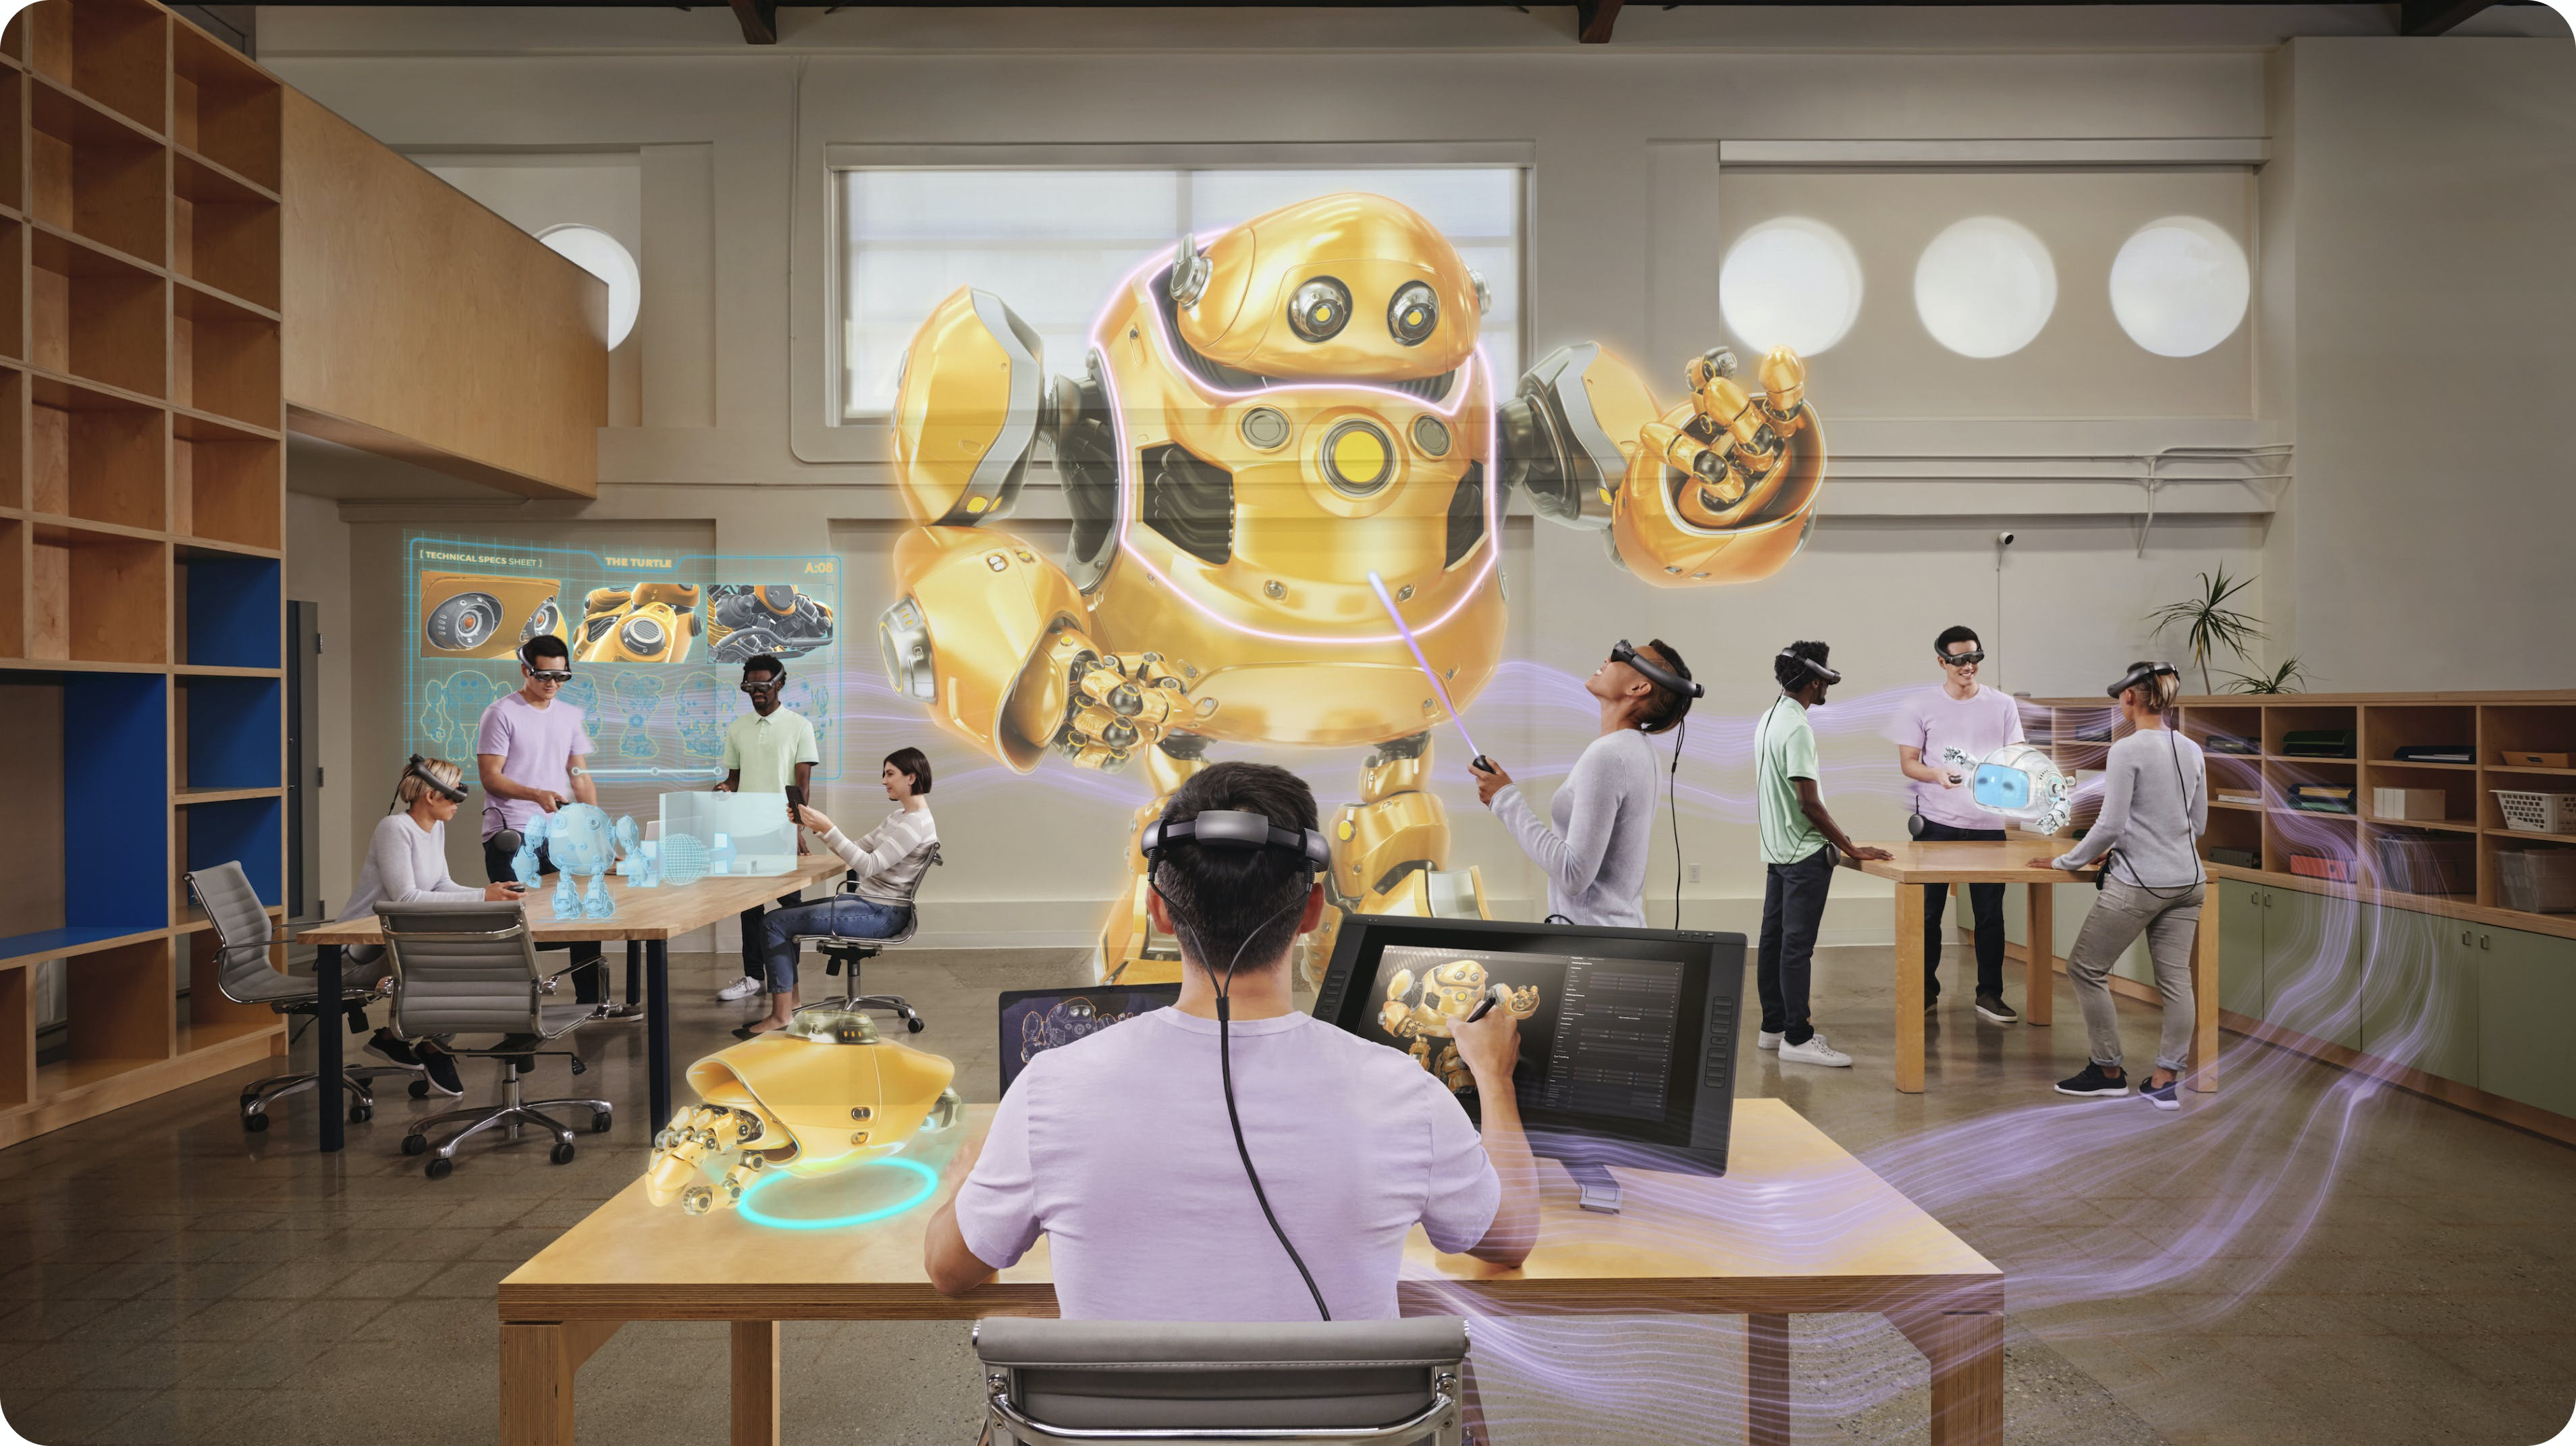 A robot surrounded by developers creating.